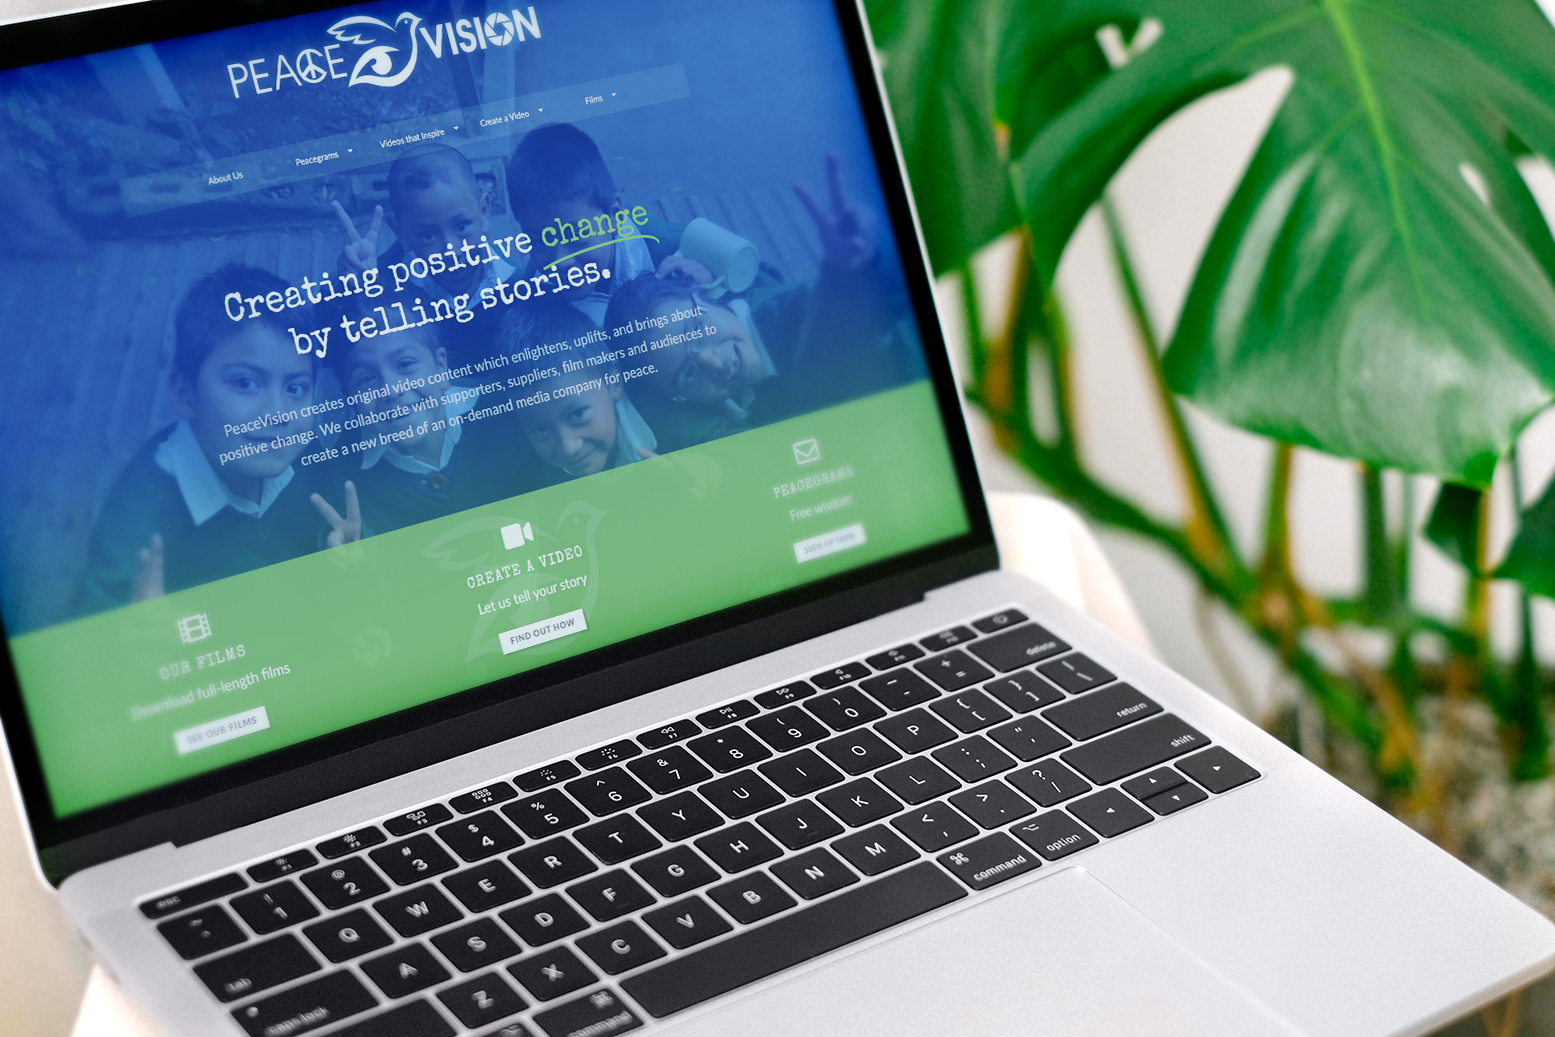 PeaceVision website on a laptop